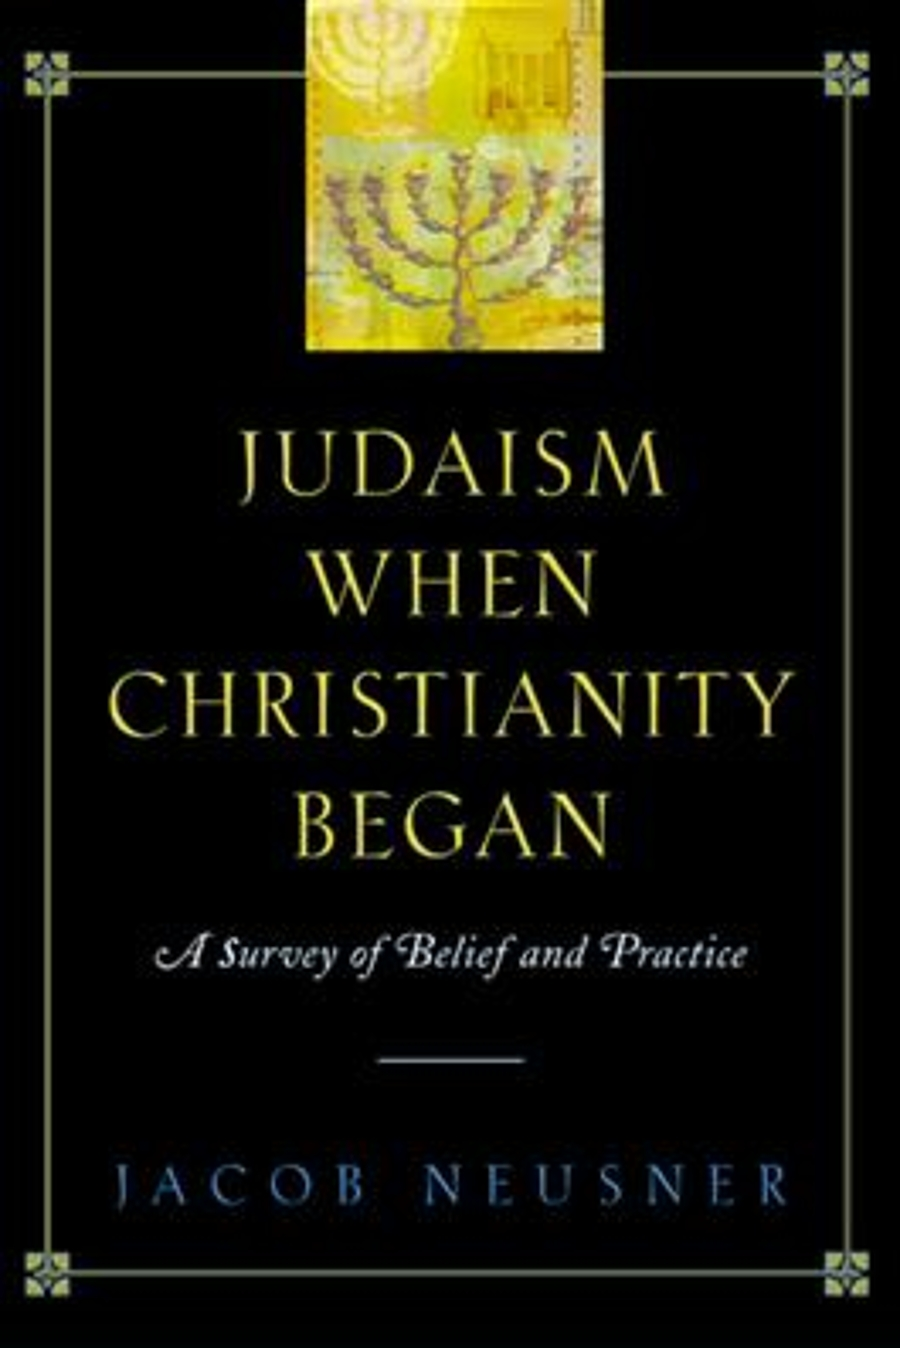 sacred texts in judaism and christianity essay